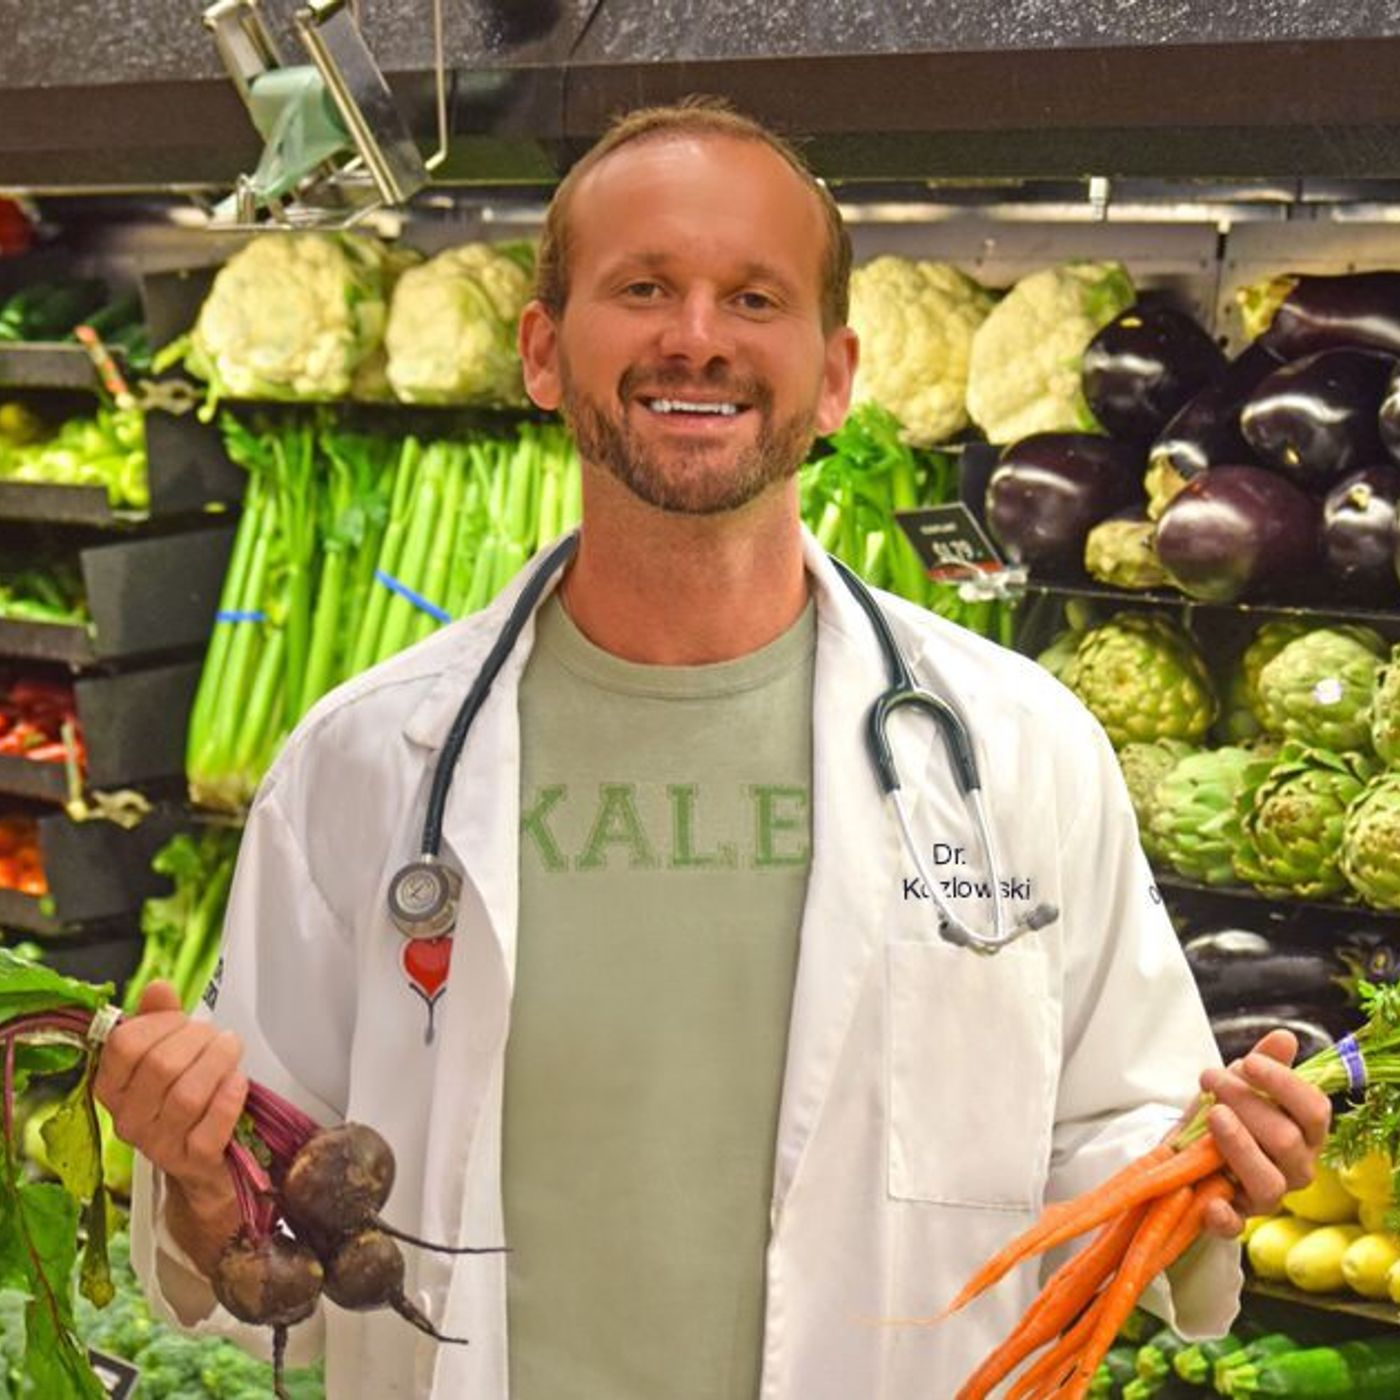 A conversation with functional medicine practioner, Dr. Peter Kozlowski.